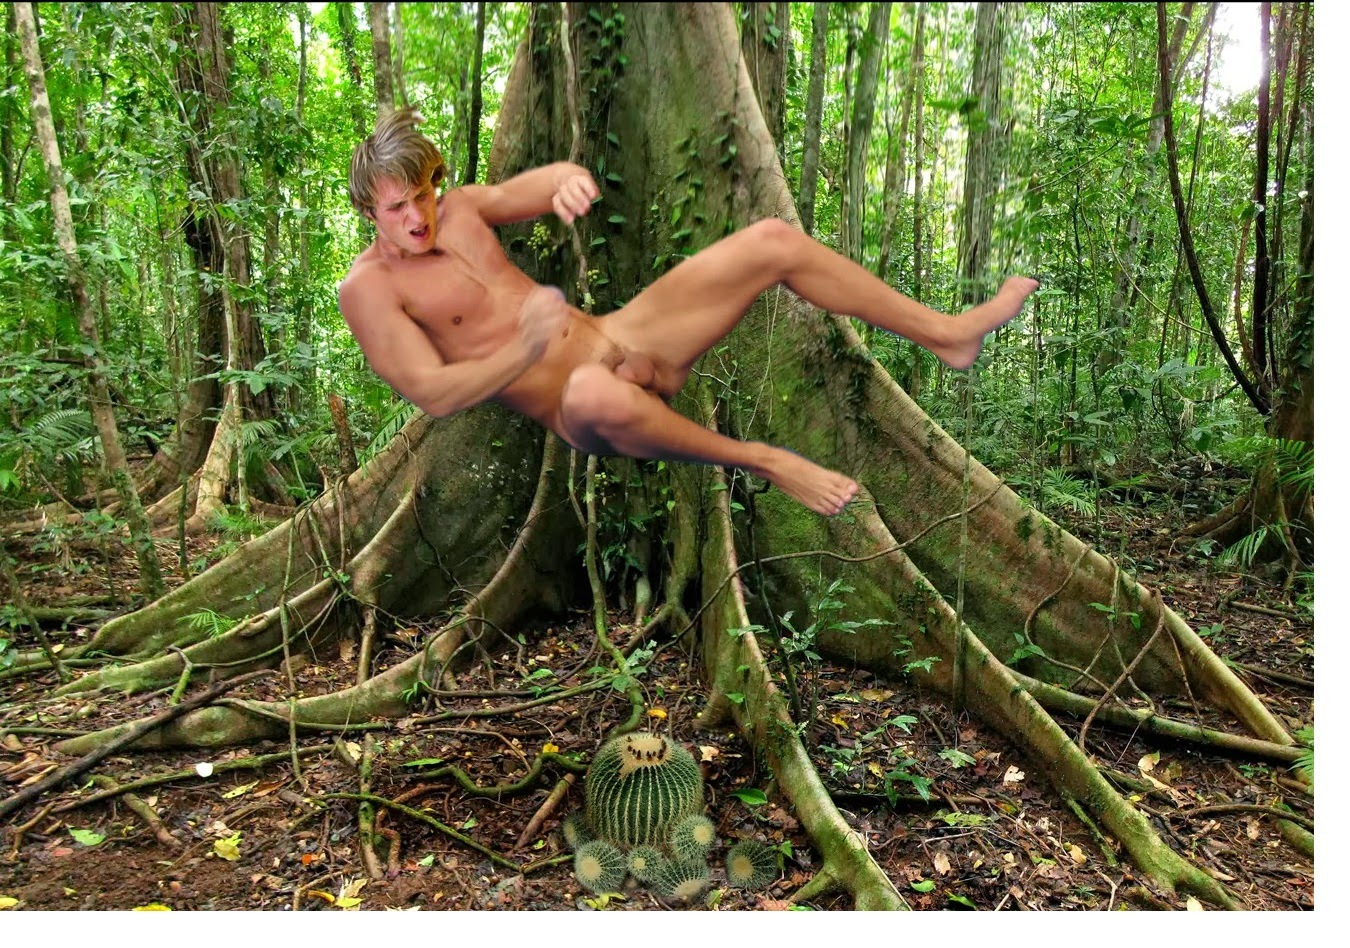 A naked girl is photographed in the wild jungle of the amazon